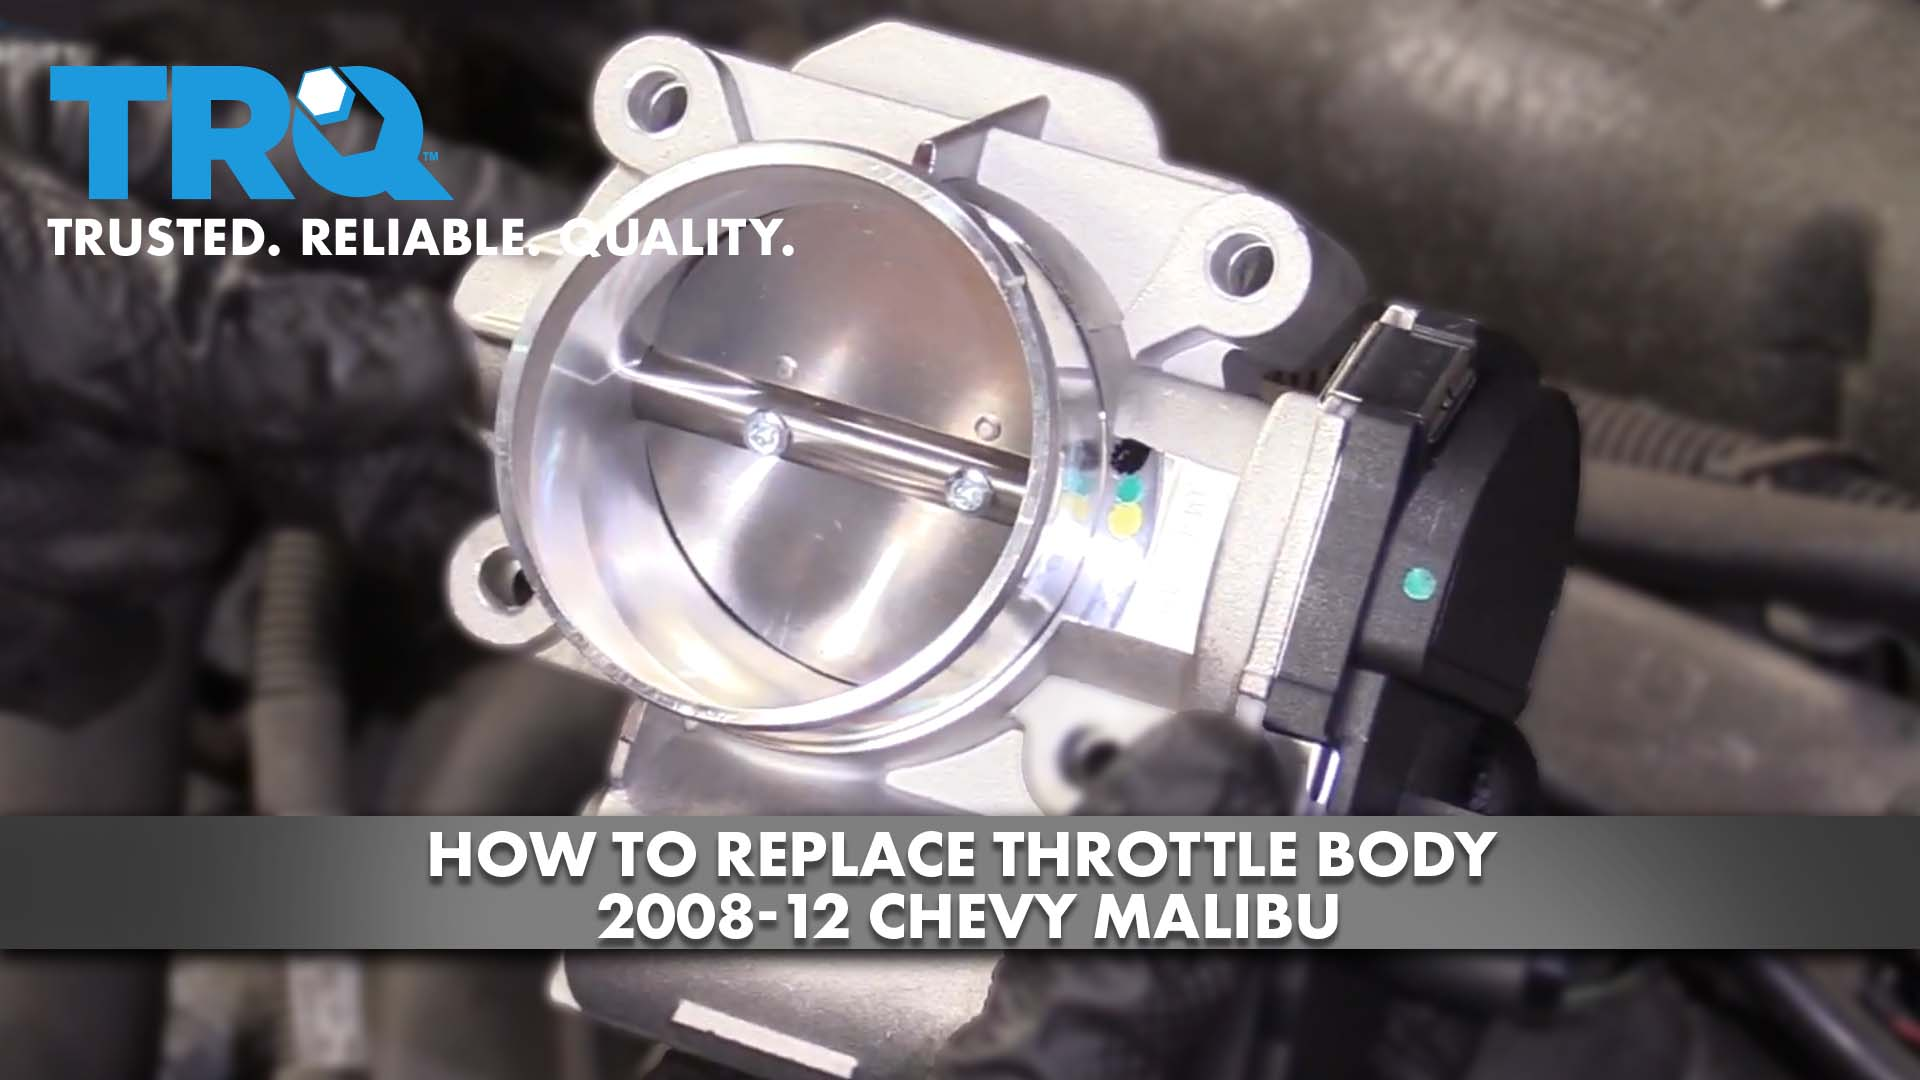 How to Replace Throttle Body 2004-07 Chevy Malibu